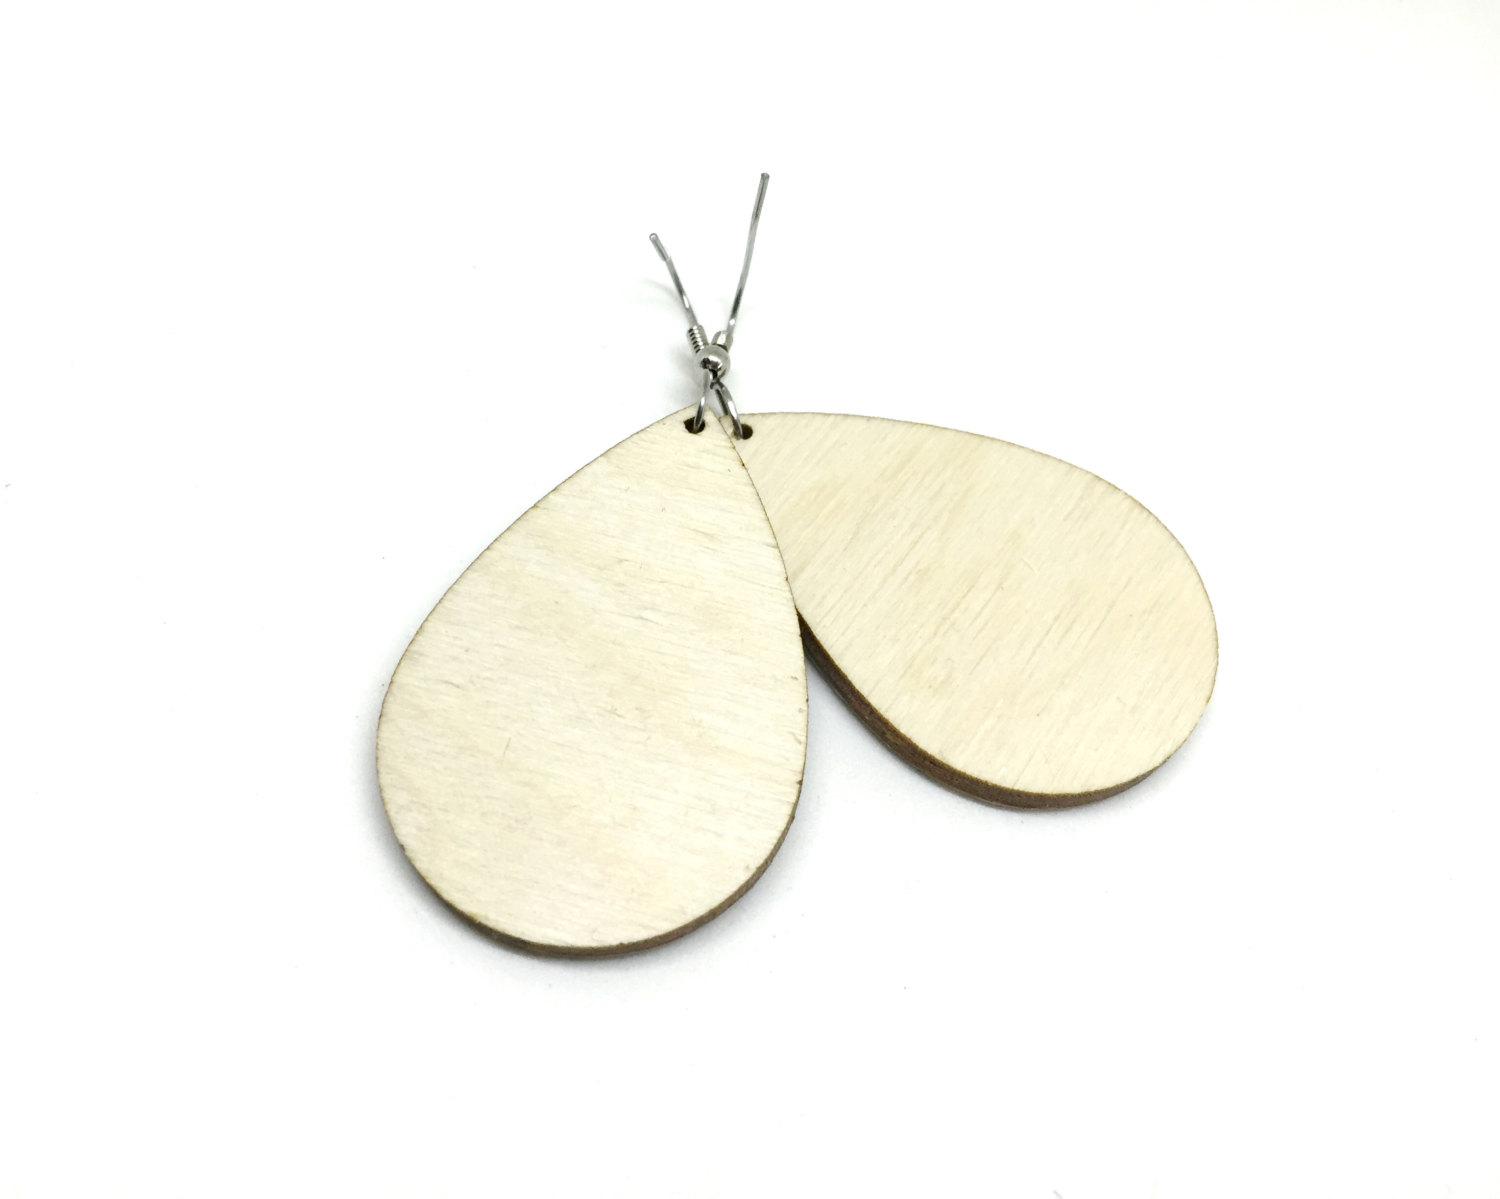 Tear Drop Earrings, White and Blue, Cherry Blossoms, Japanese Chiyogami  Paper, Wood, Lightweight, Laser cut, Resin coated, Pattern varies